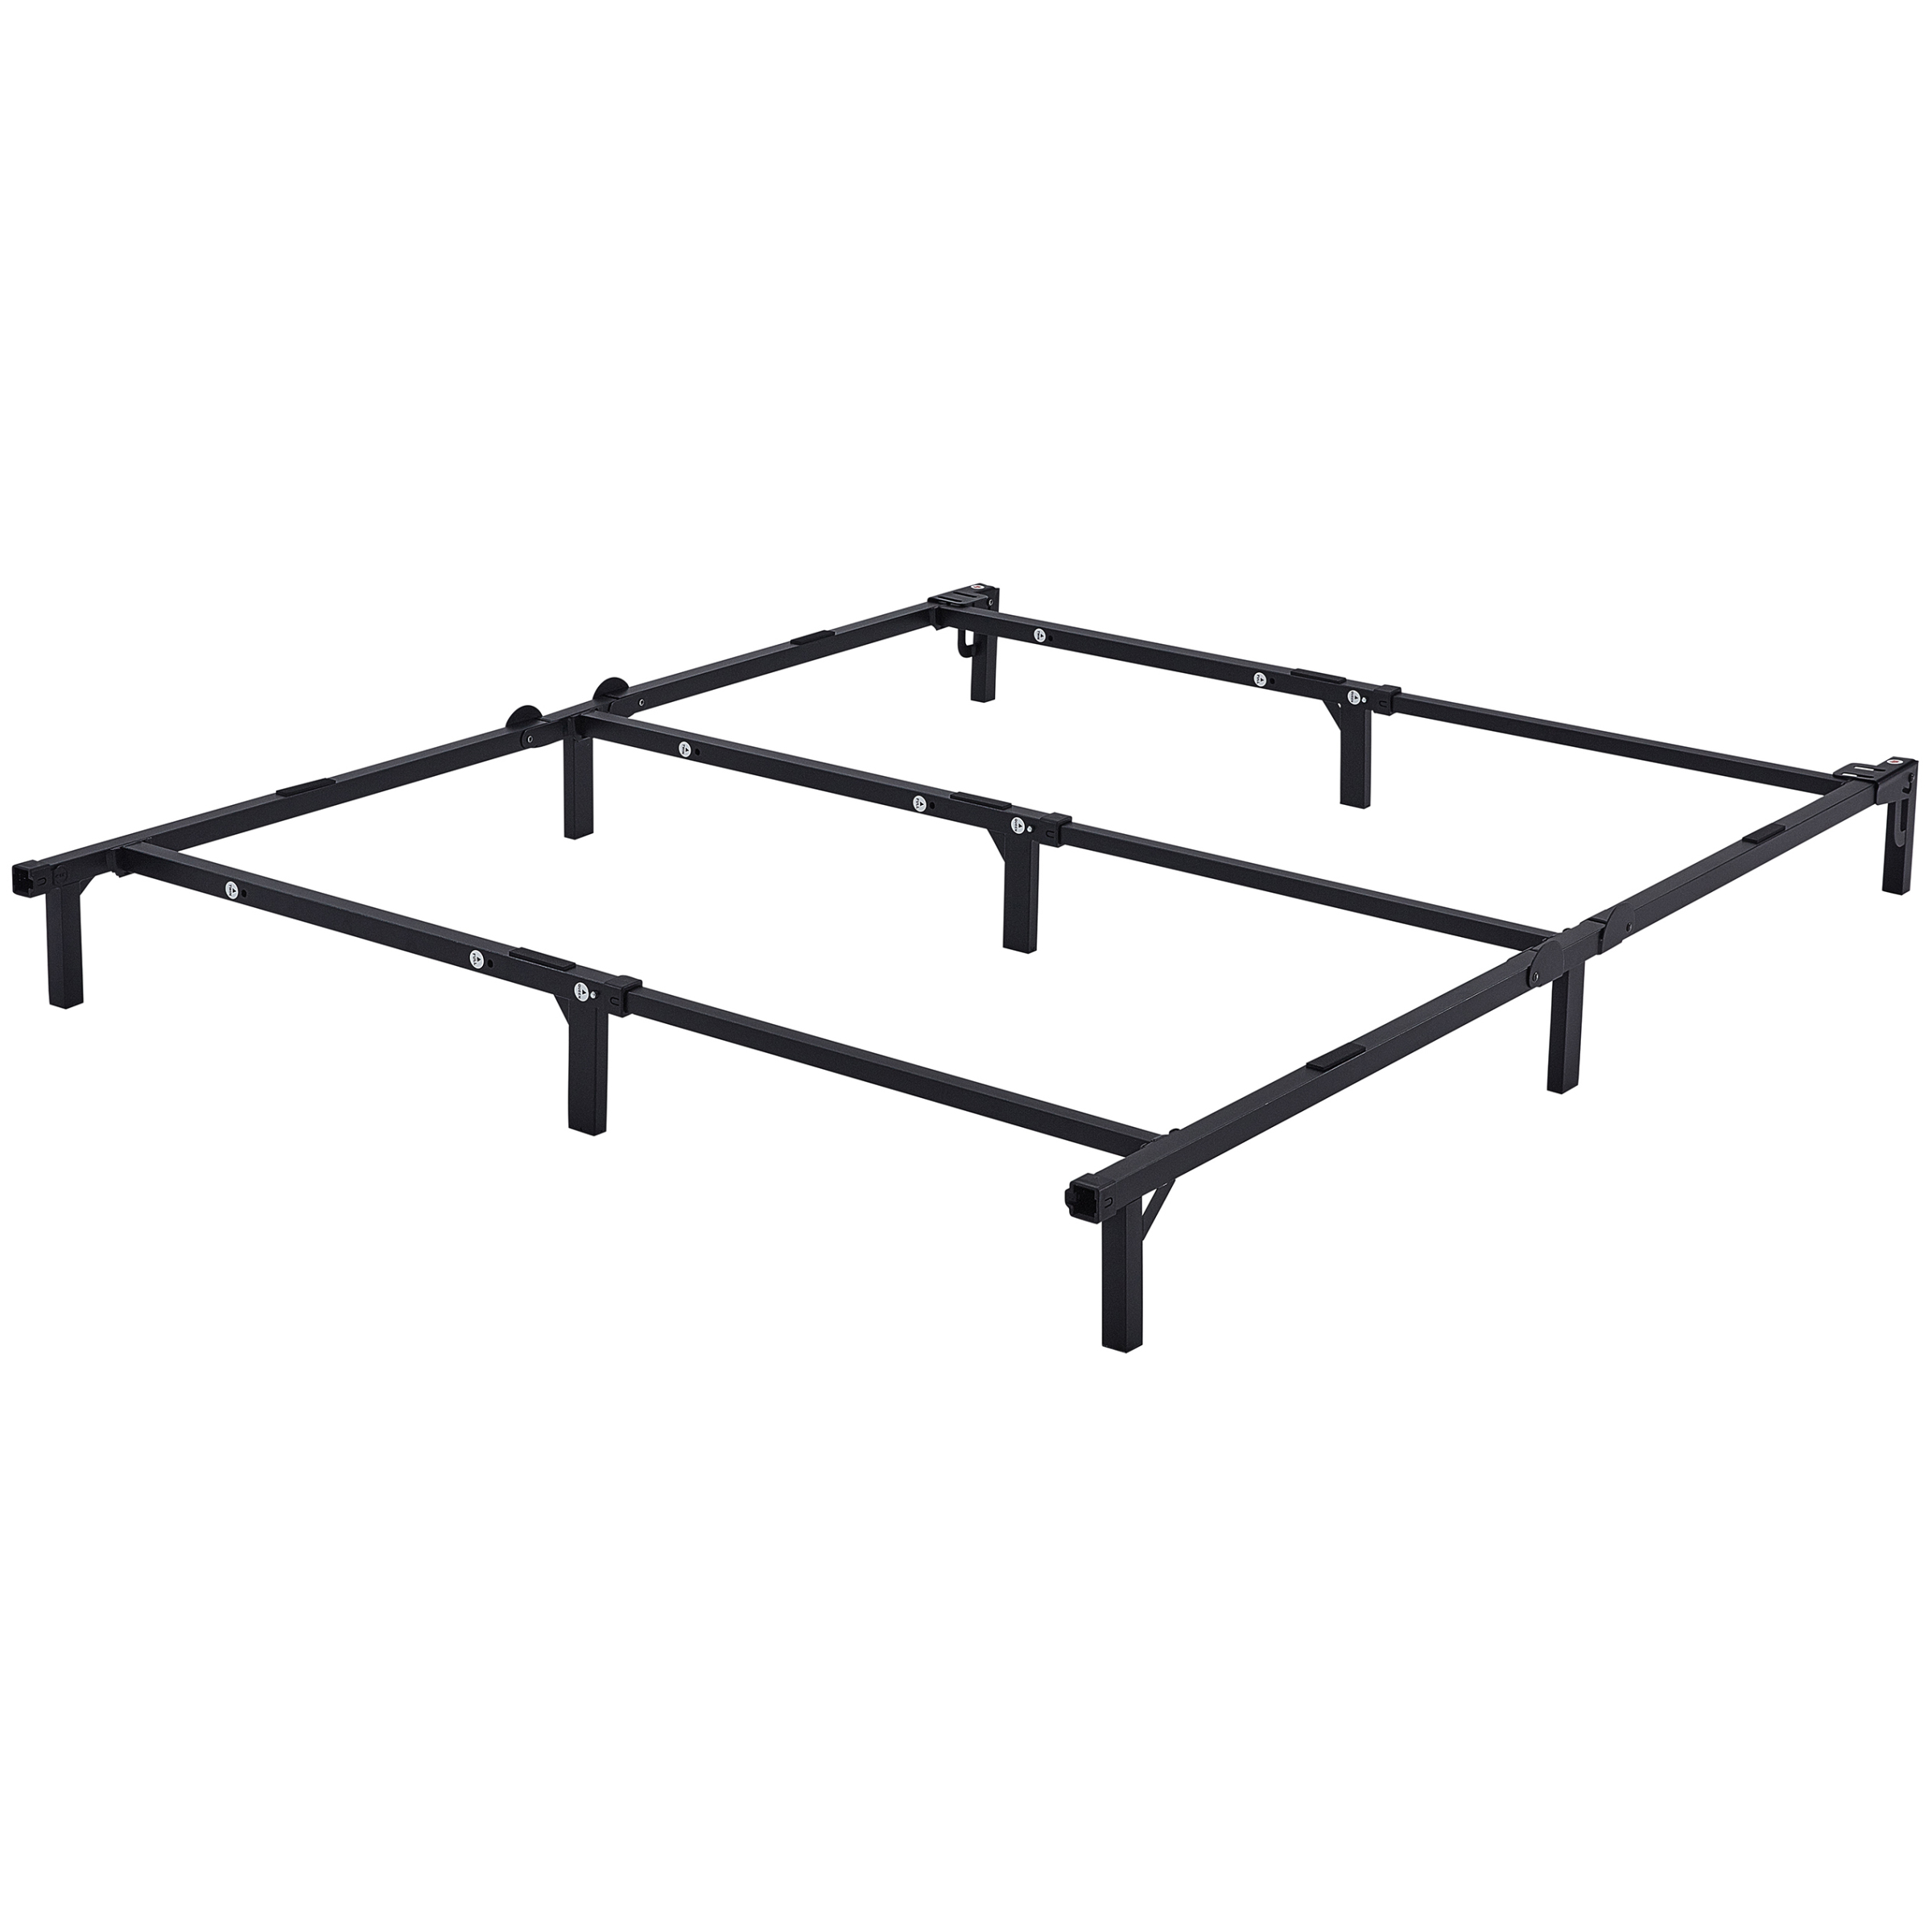 "Mainstays 7"" Adjustable Bed Frame, Black Steel by Changtai Campvalley Leisure Product Co., Ltd"